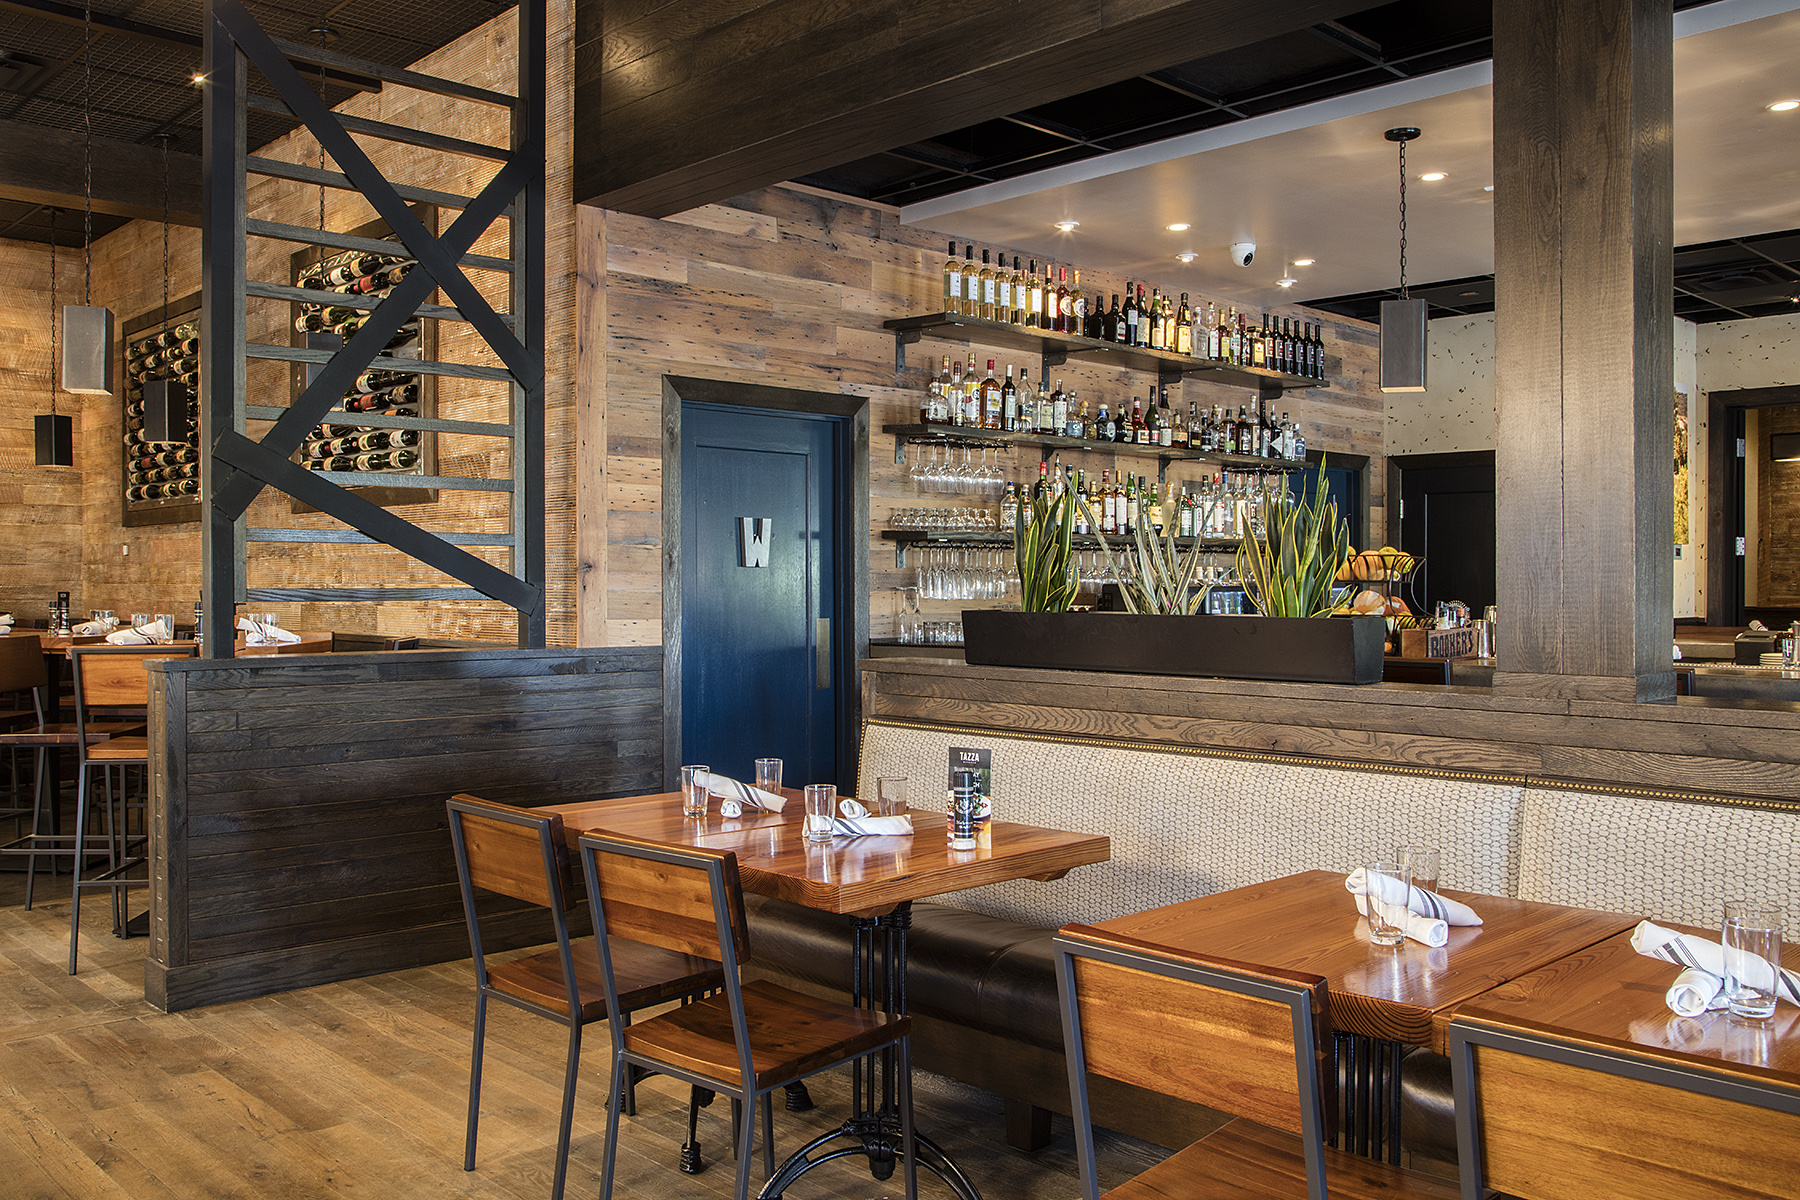 Photo: Alston Thompson Photography  Floor, wall panelling, tables, and chairs at Tazza Kitchen, Midlothian, Virginia provided by Surface Architectural Supply